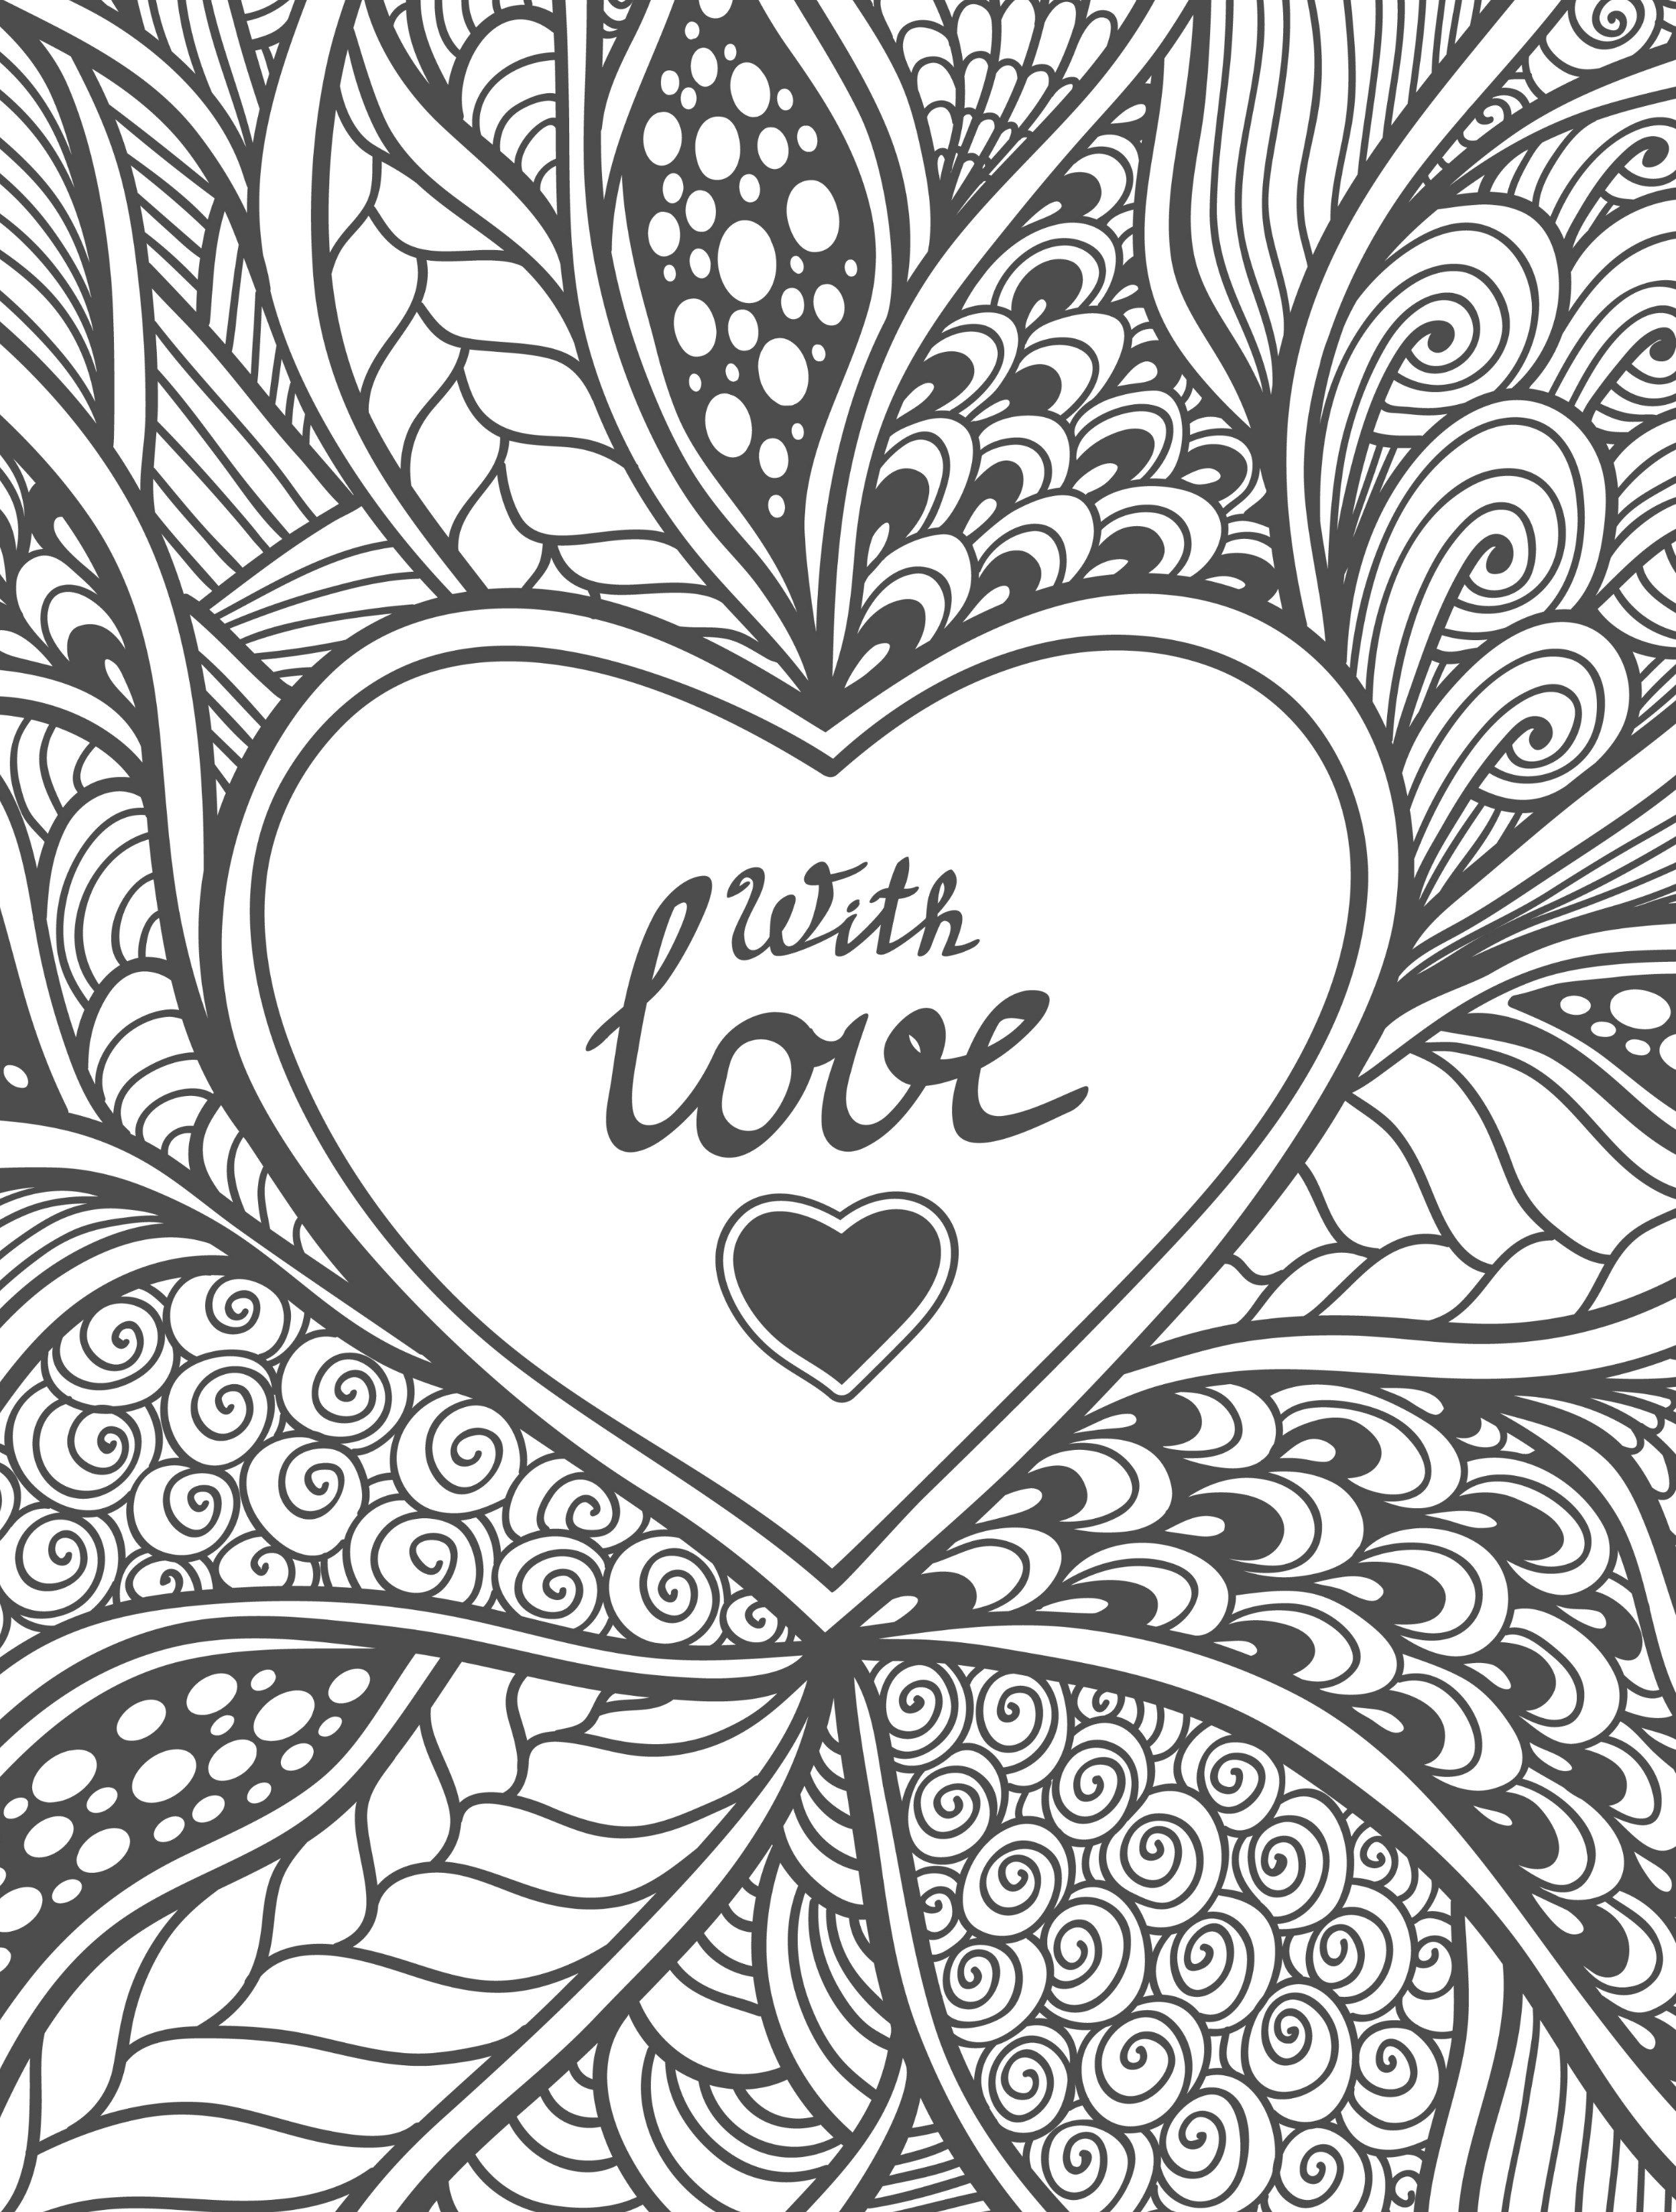 20 Free Printable Valentines Adult Coloring Pages | Coloring | Free - Free Printable Heart Designs